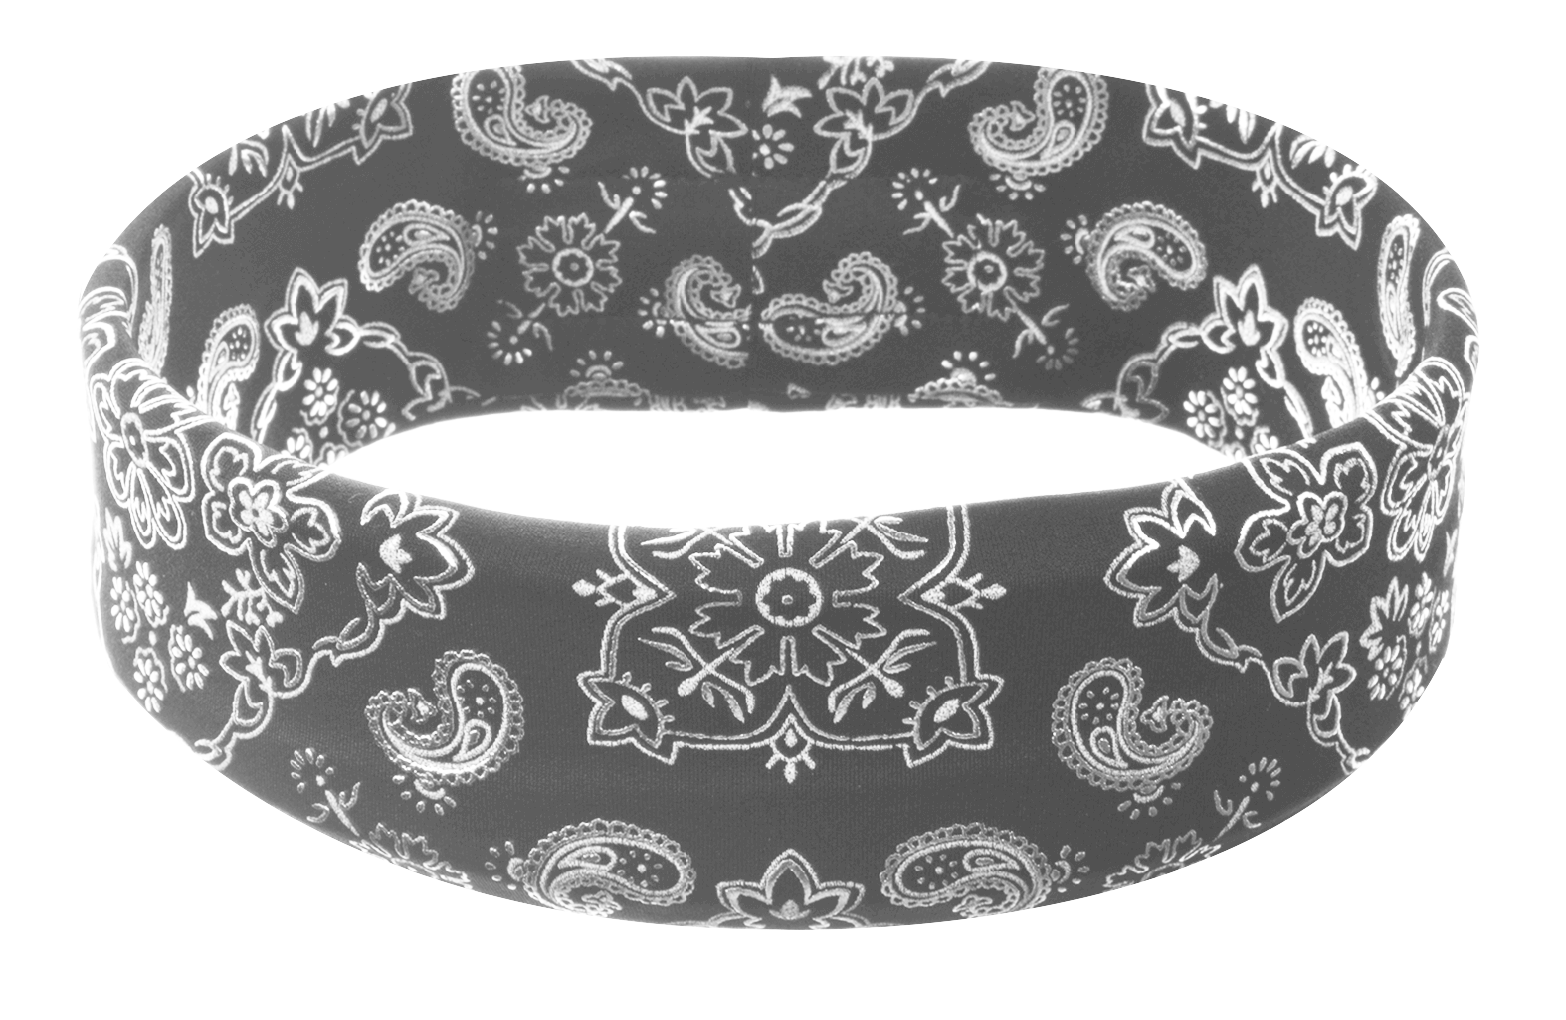 Black Bandana Png, png collections at sccpre.cat.